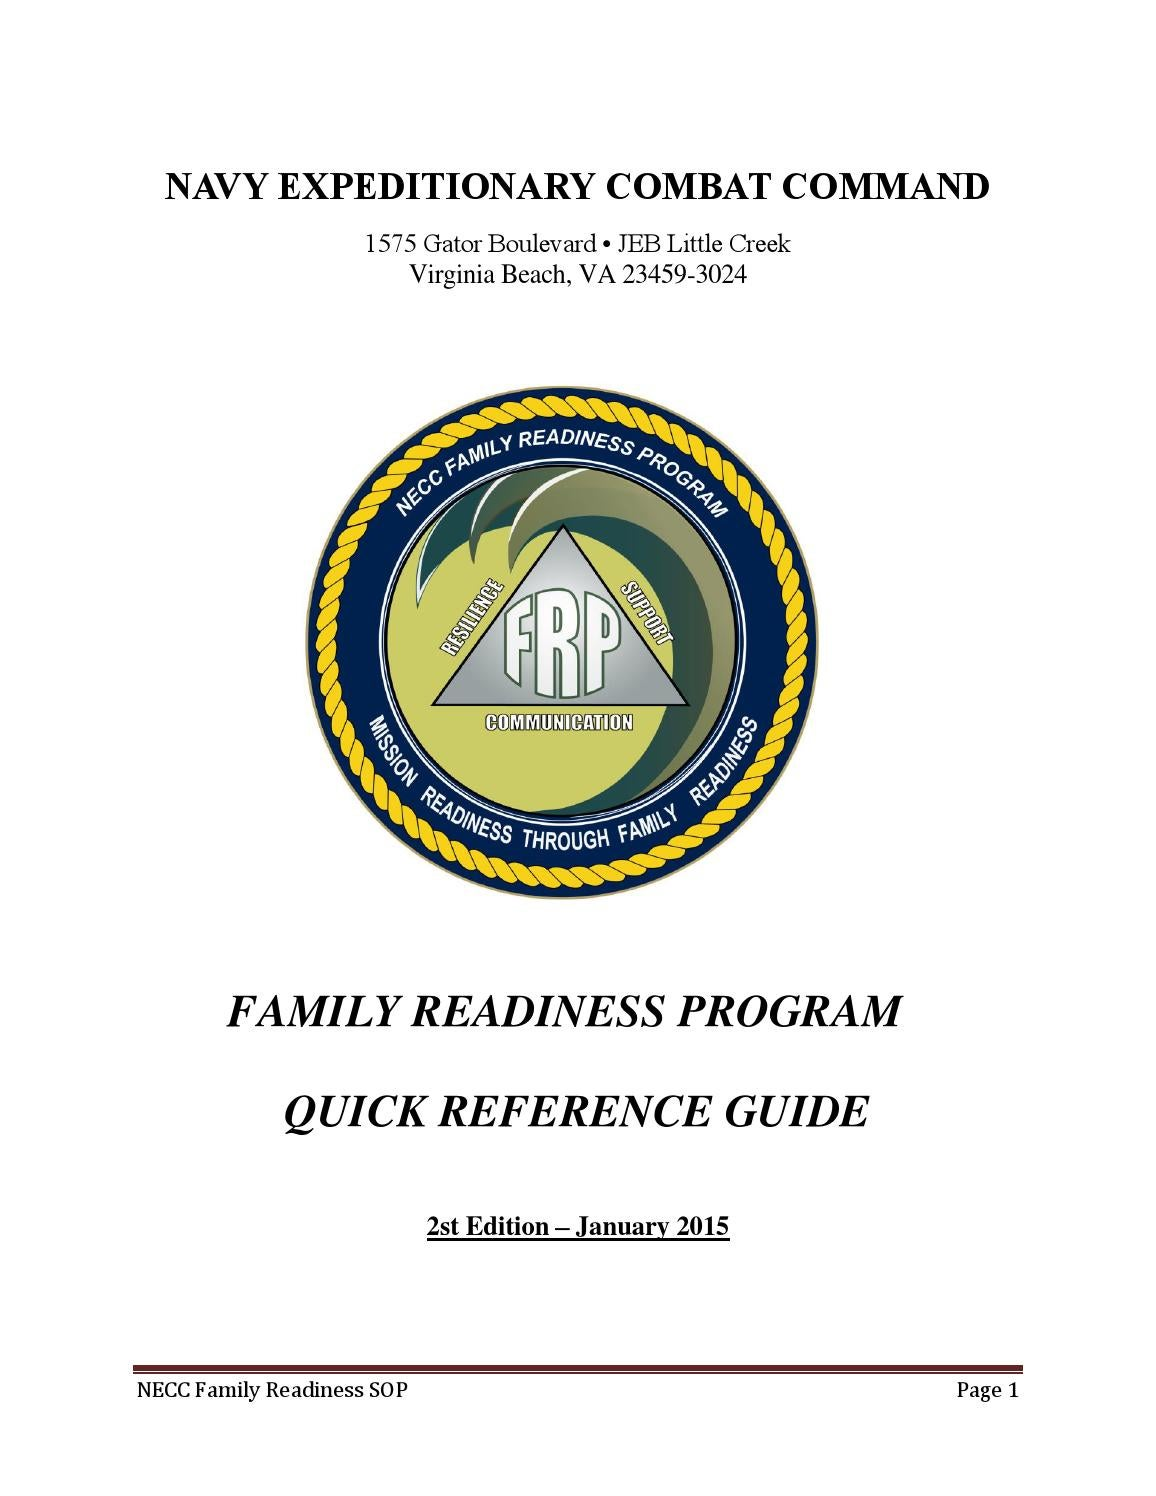 necc qrg jan2015 by navy expeditionary combat command issuu rh issuu com My Hunt Guide Britain My Guide